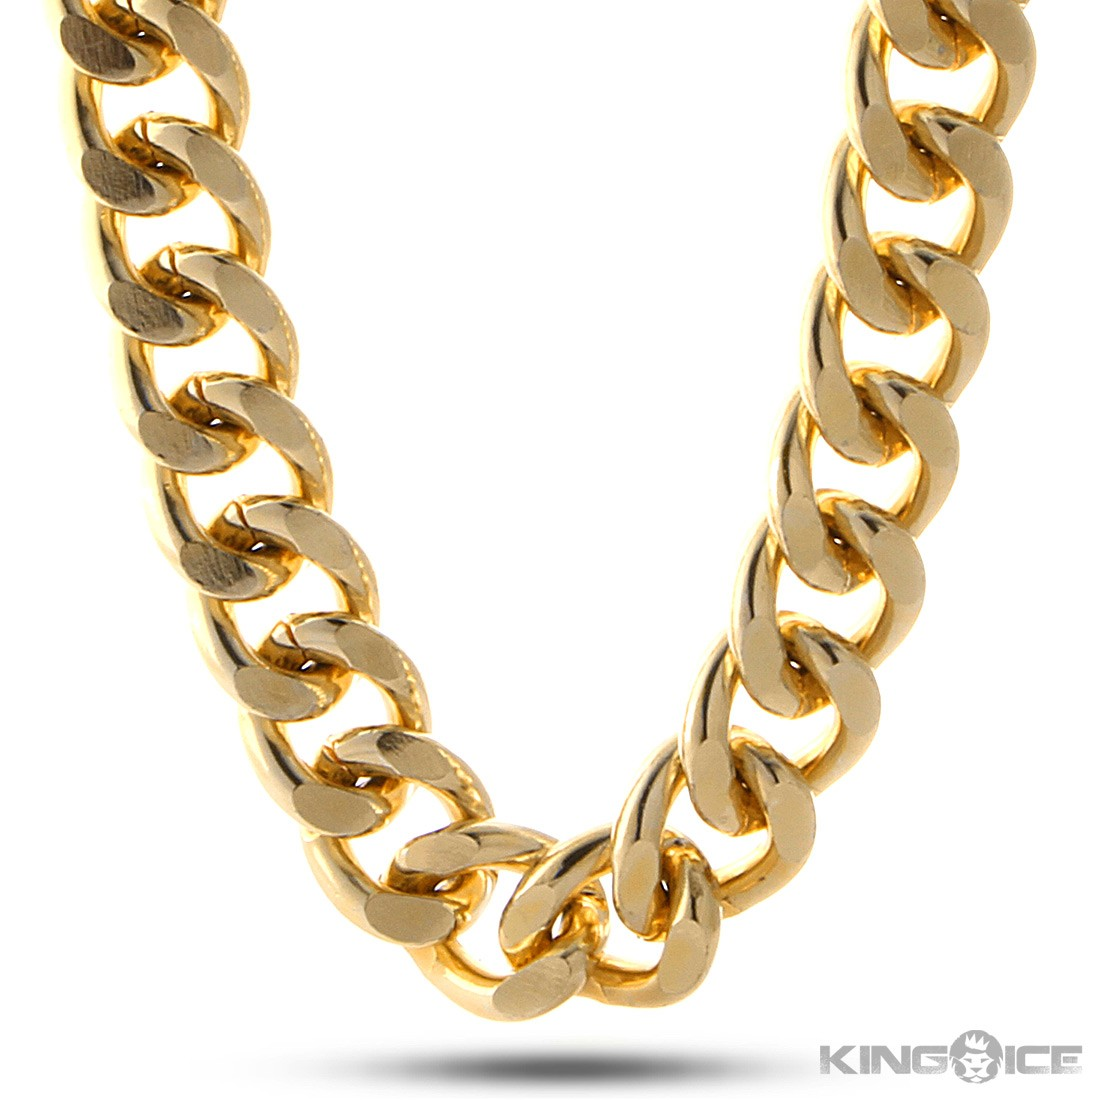 Rapper gold chain png